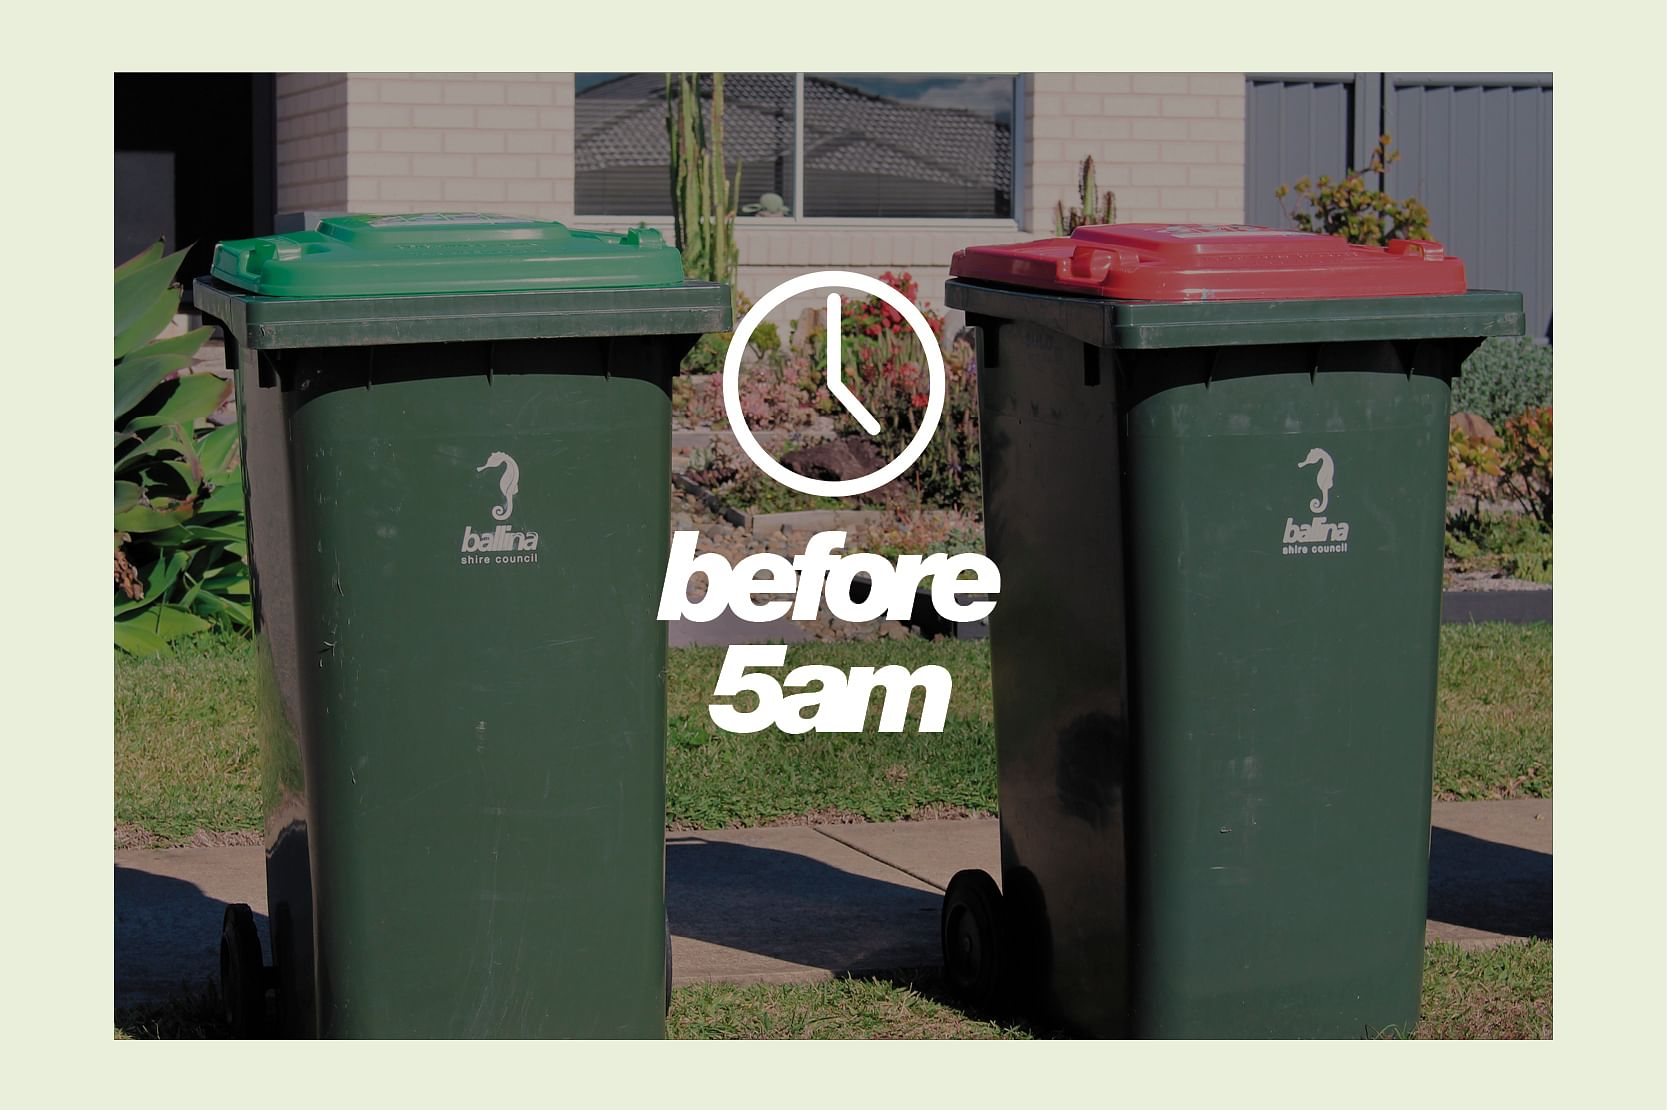 Image of bin put your bin out before 5am